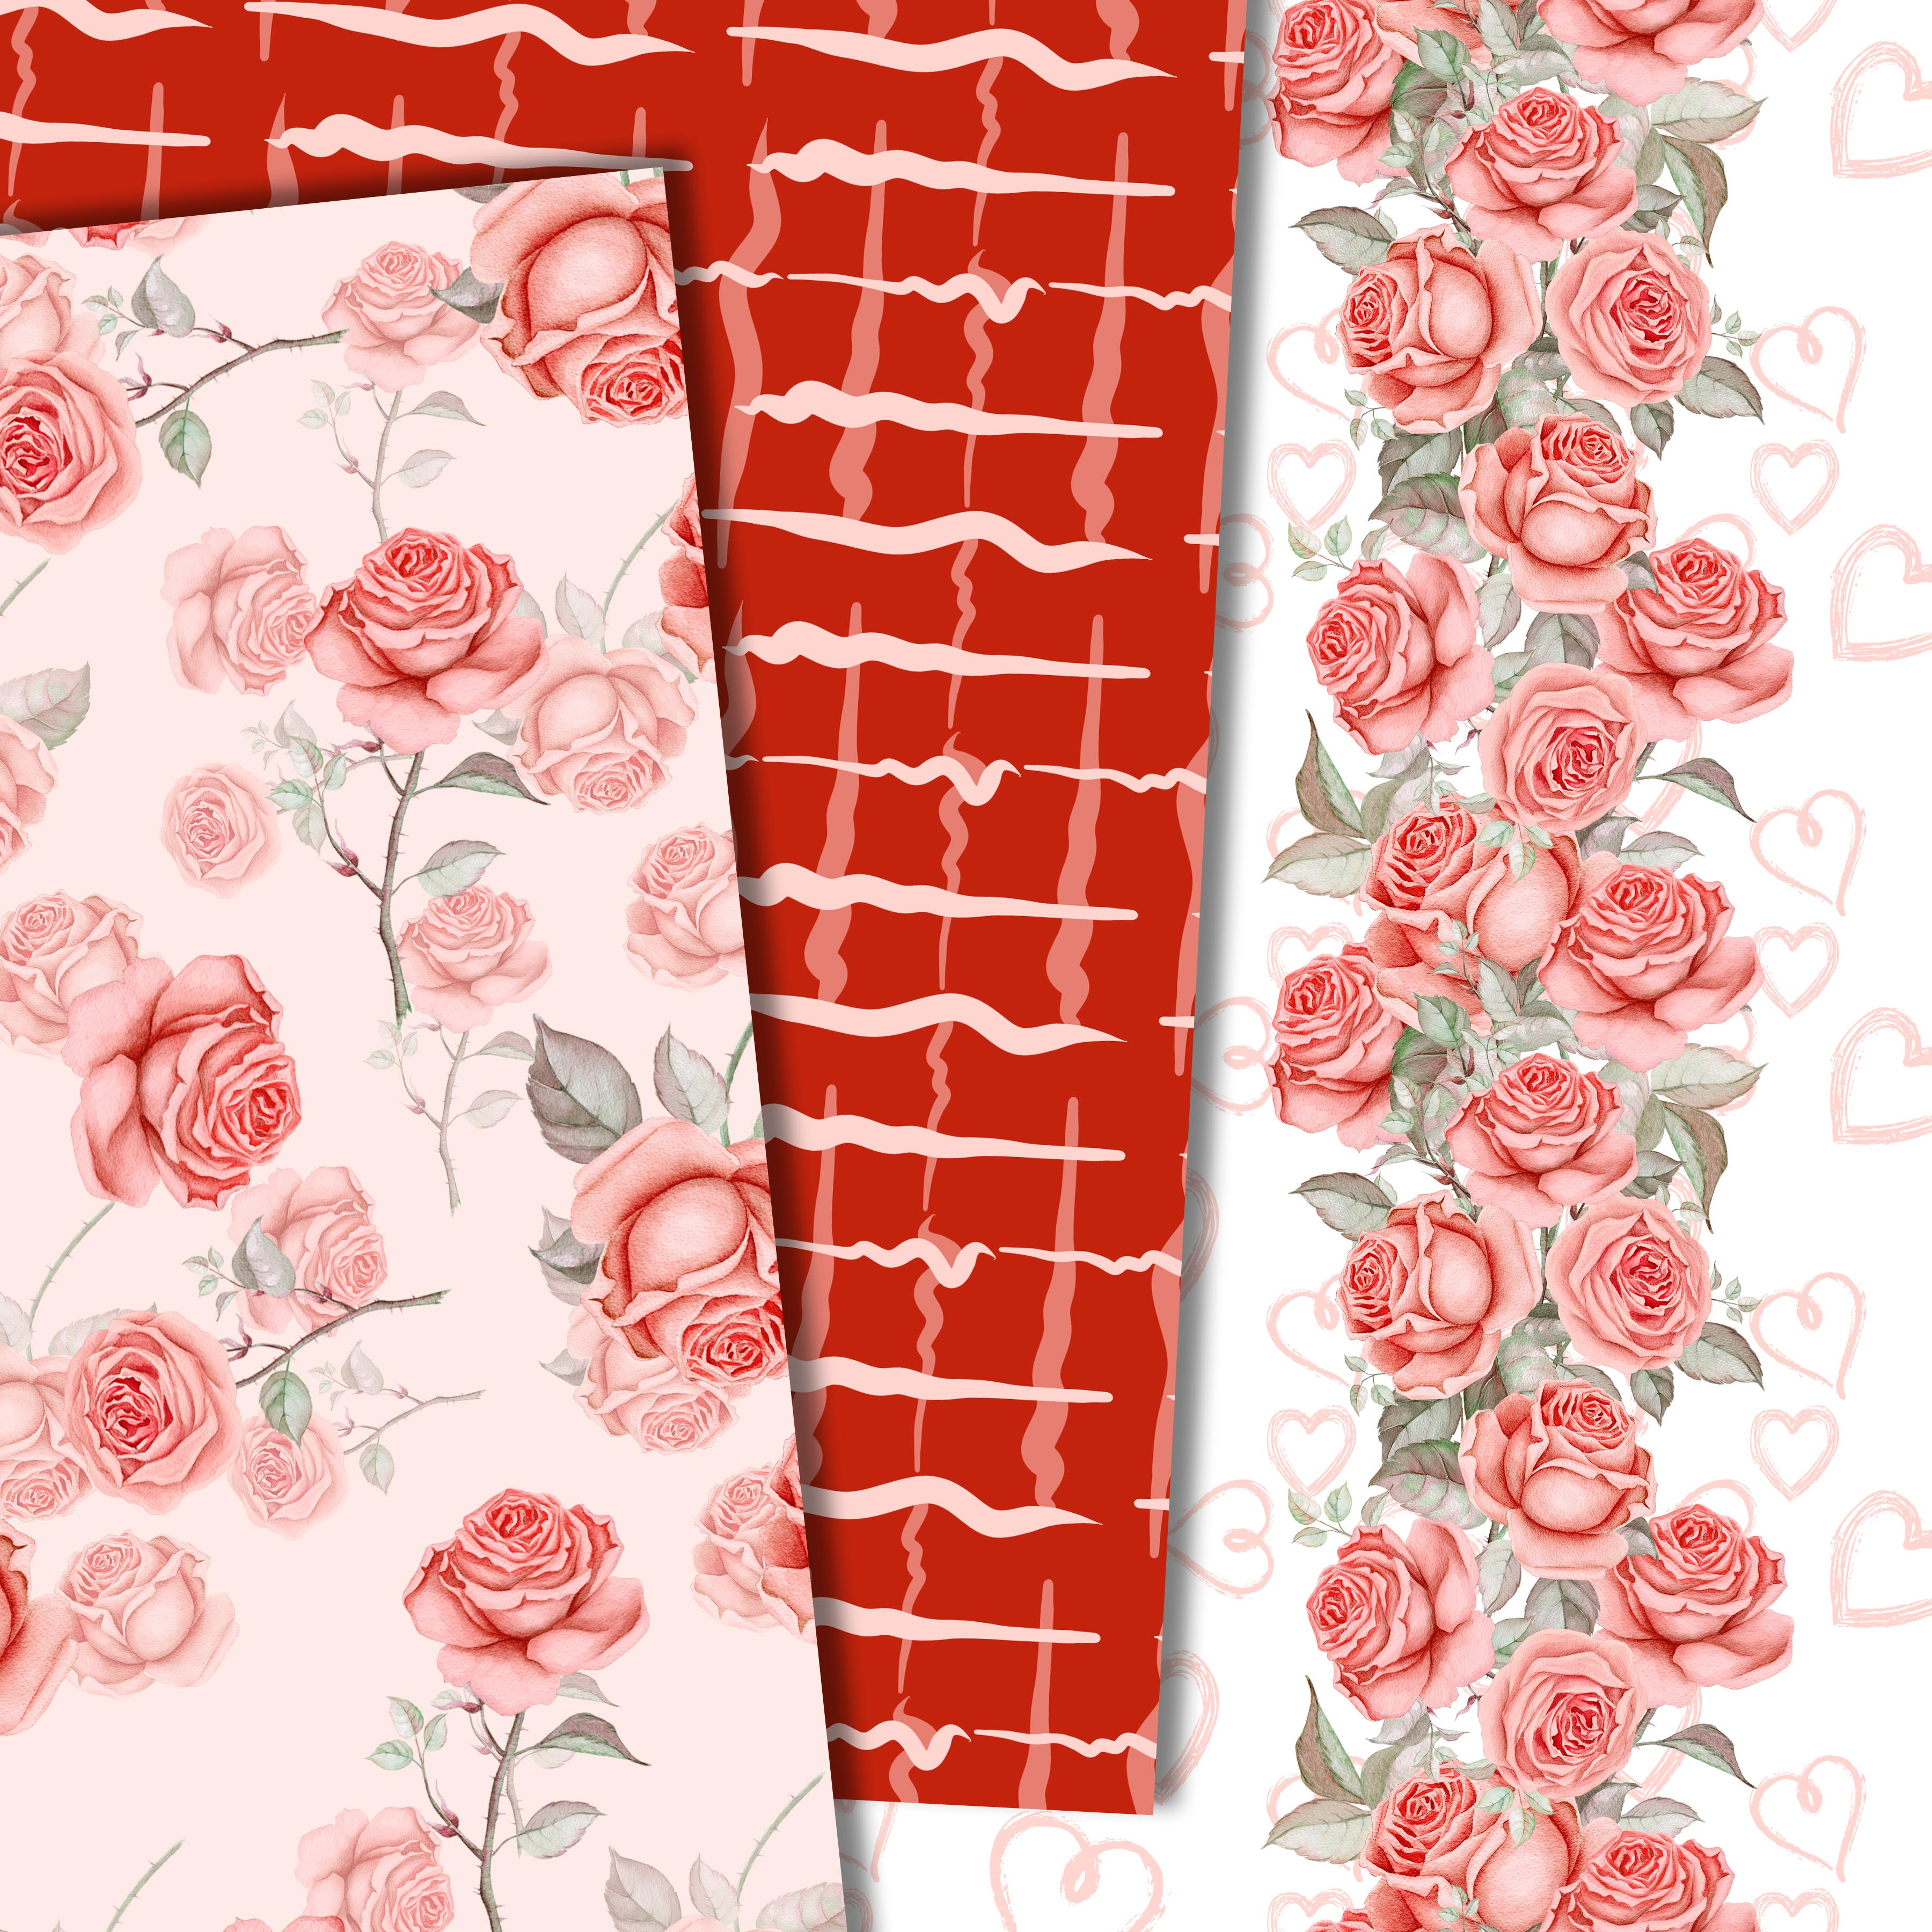 Roses in red example image 3